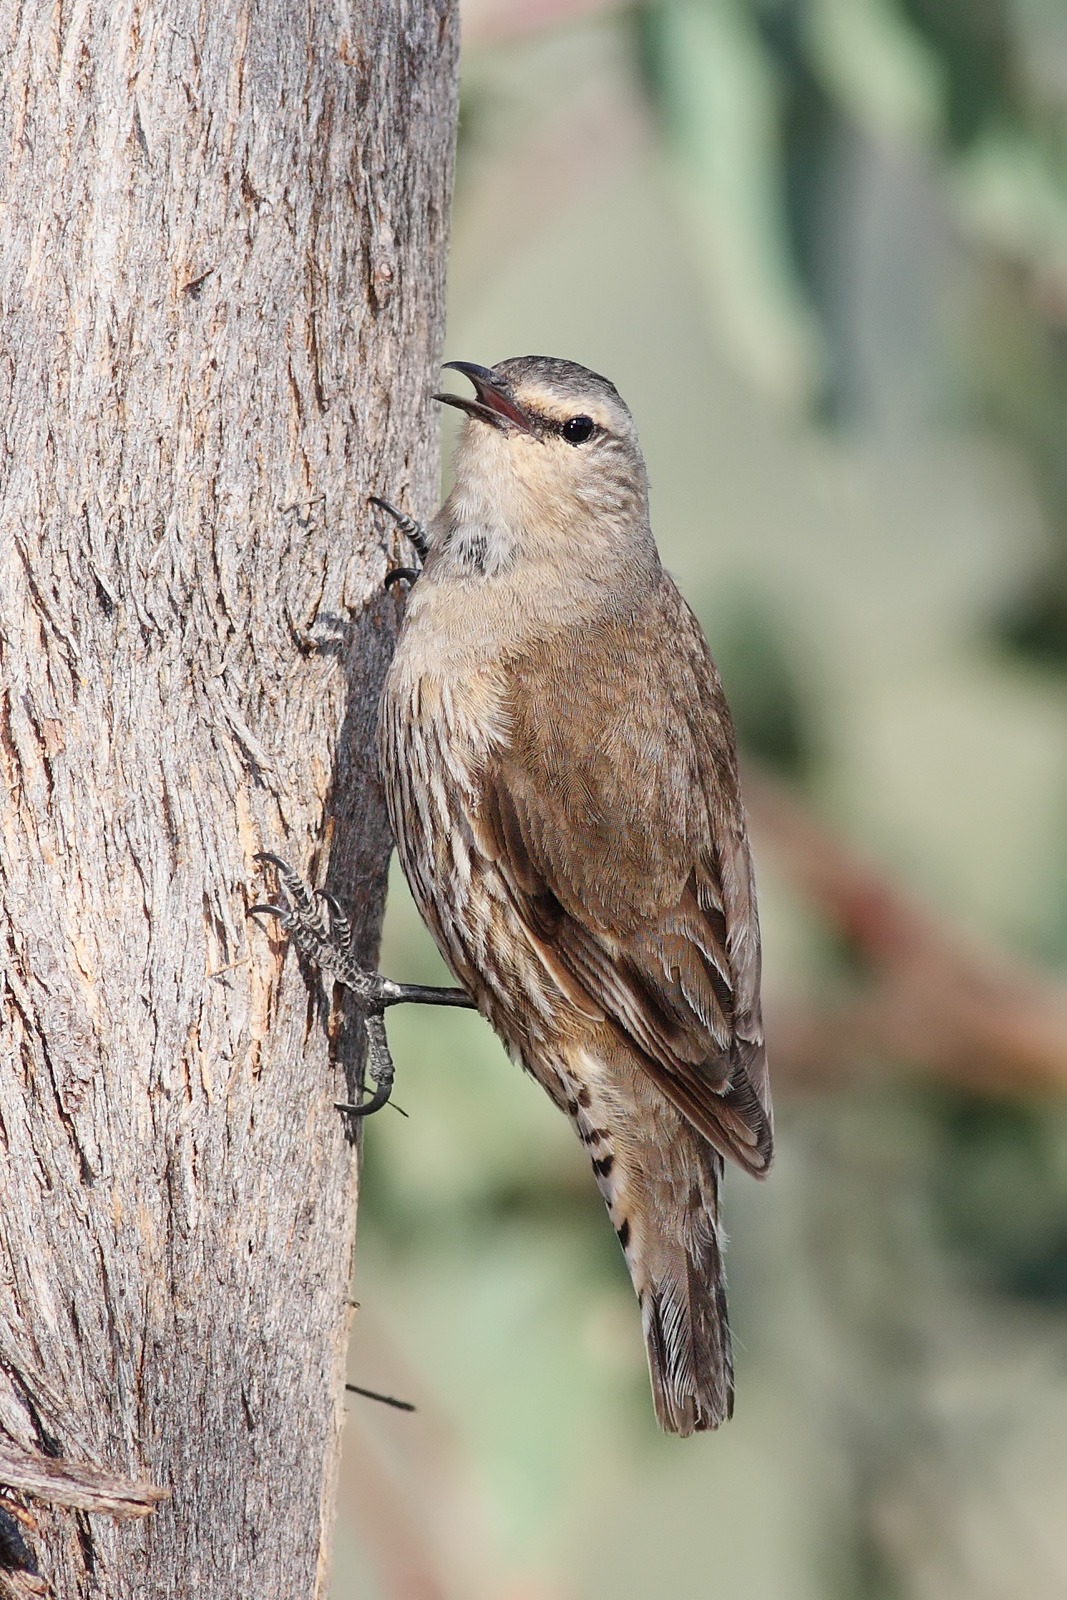 Brown treecreeper - Wikipedia